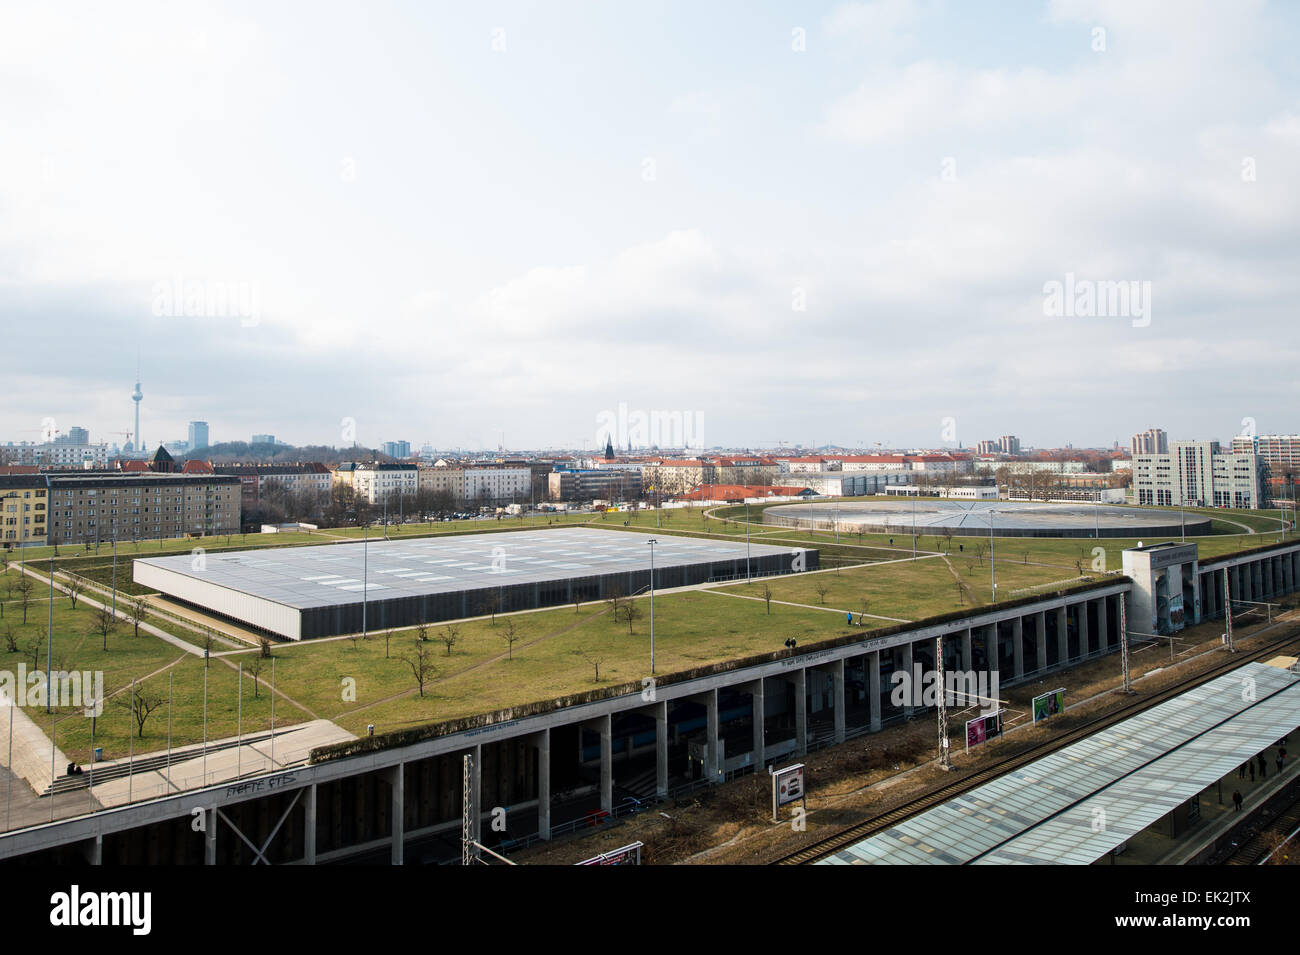 Swimmingpool Berlin Berlin Germany 13th Mar 2015 The Indoor Swimmingpool And The